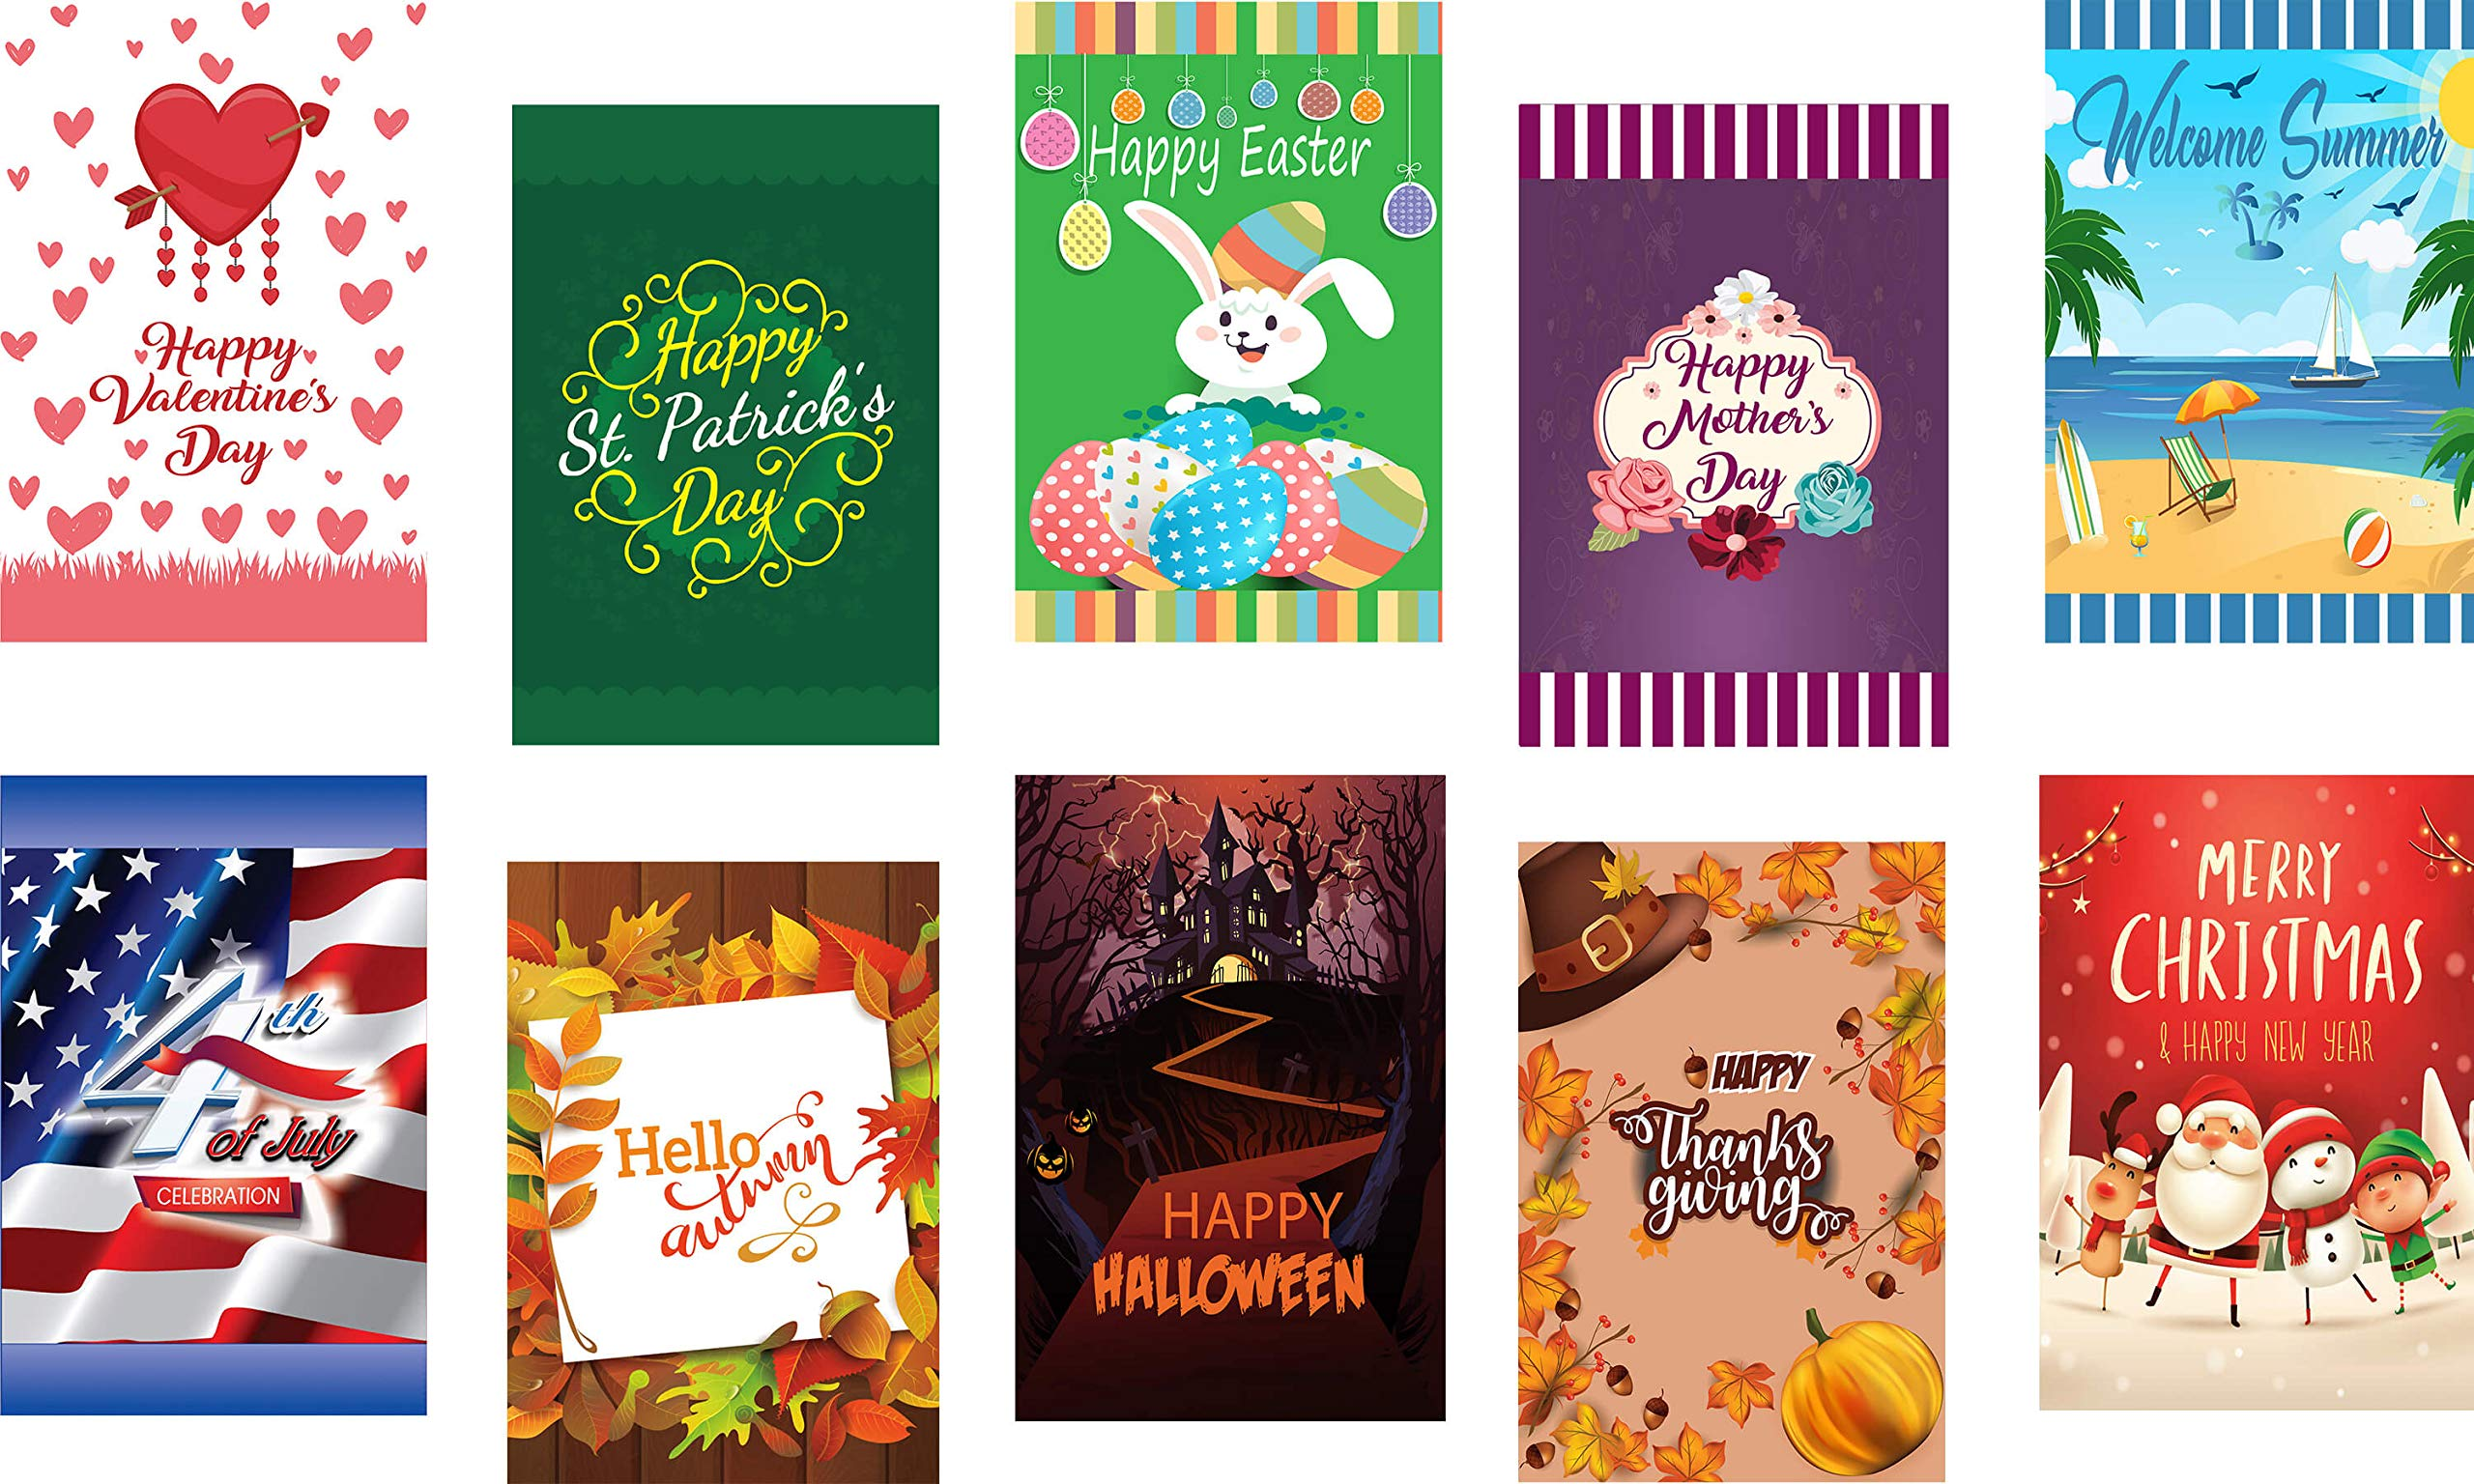 Seasonal Garden Flag Set of 10 for Outdoors - 10 Pack Assortment of 12 x 18 inch Large Holiday Yard Flags - Double Sided Colorful Design for All Seasons and Holidays - Premium Quality Durable Material